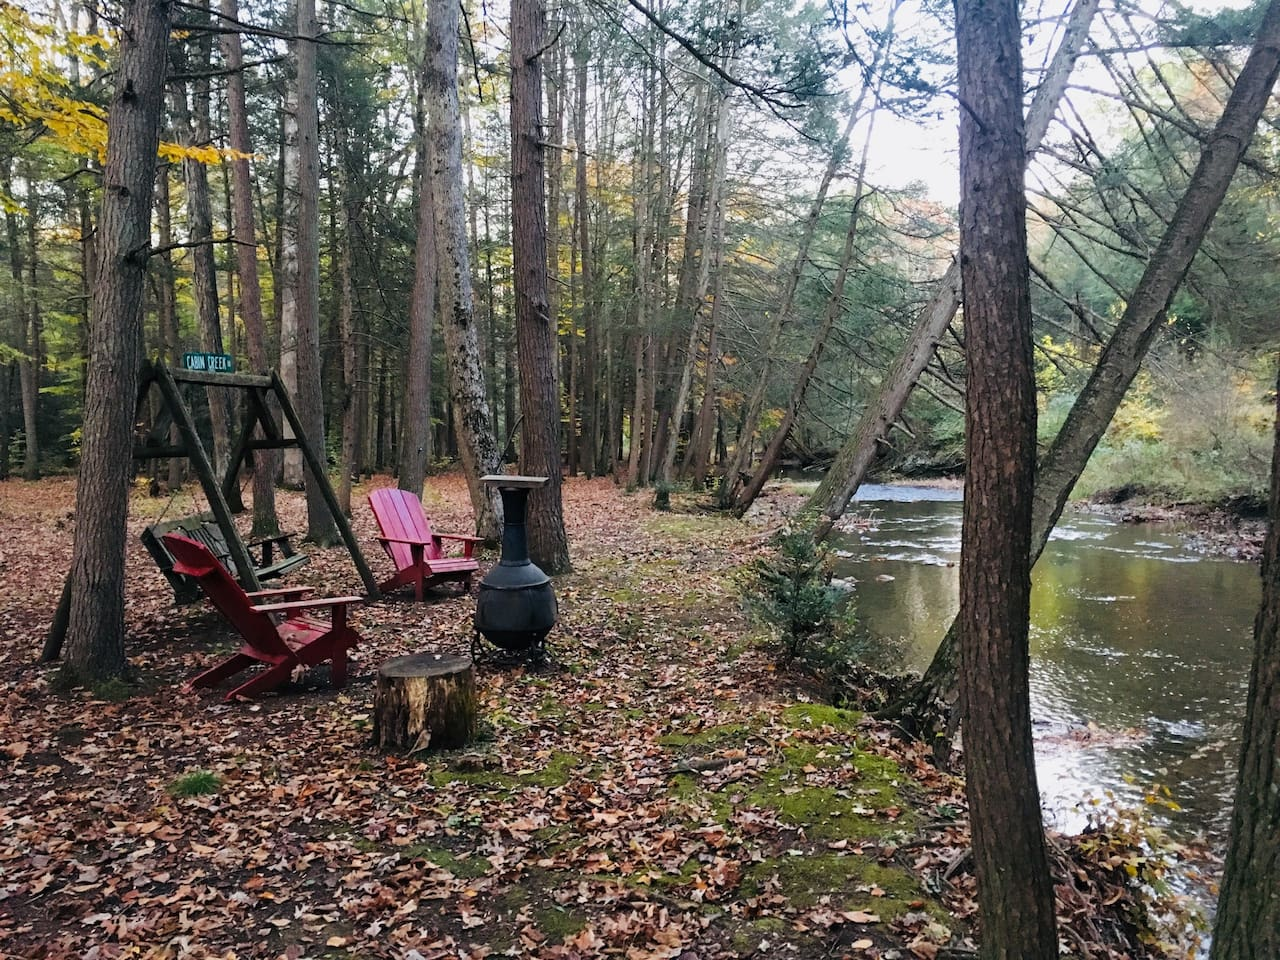 A place to relax by the creek